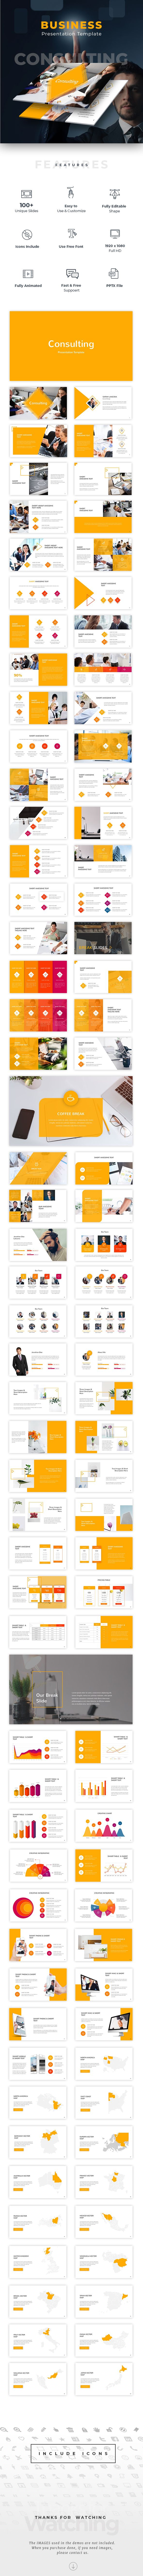 Business Consulting Powerpoint Business Powerpoint Templates